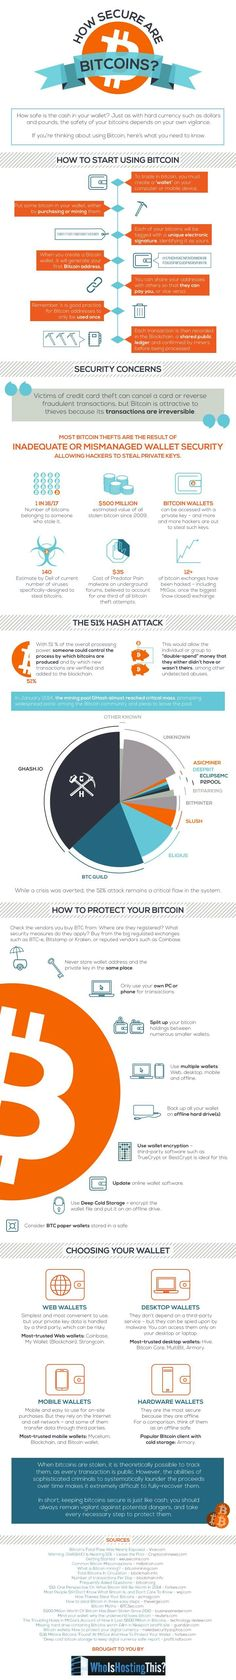 How Secure are Bitcoins?   #infographic #Bitcoin #Currency